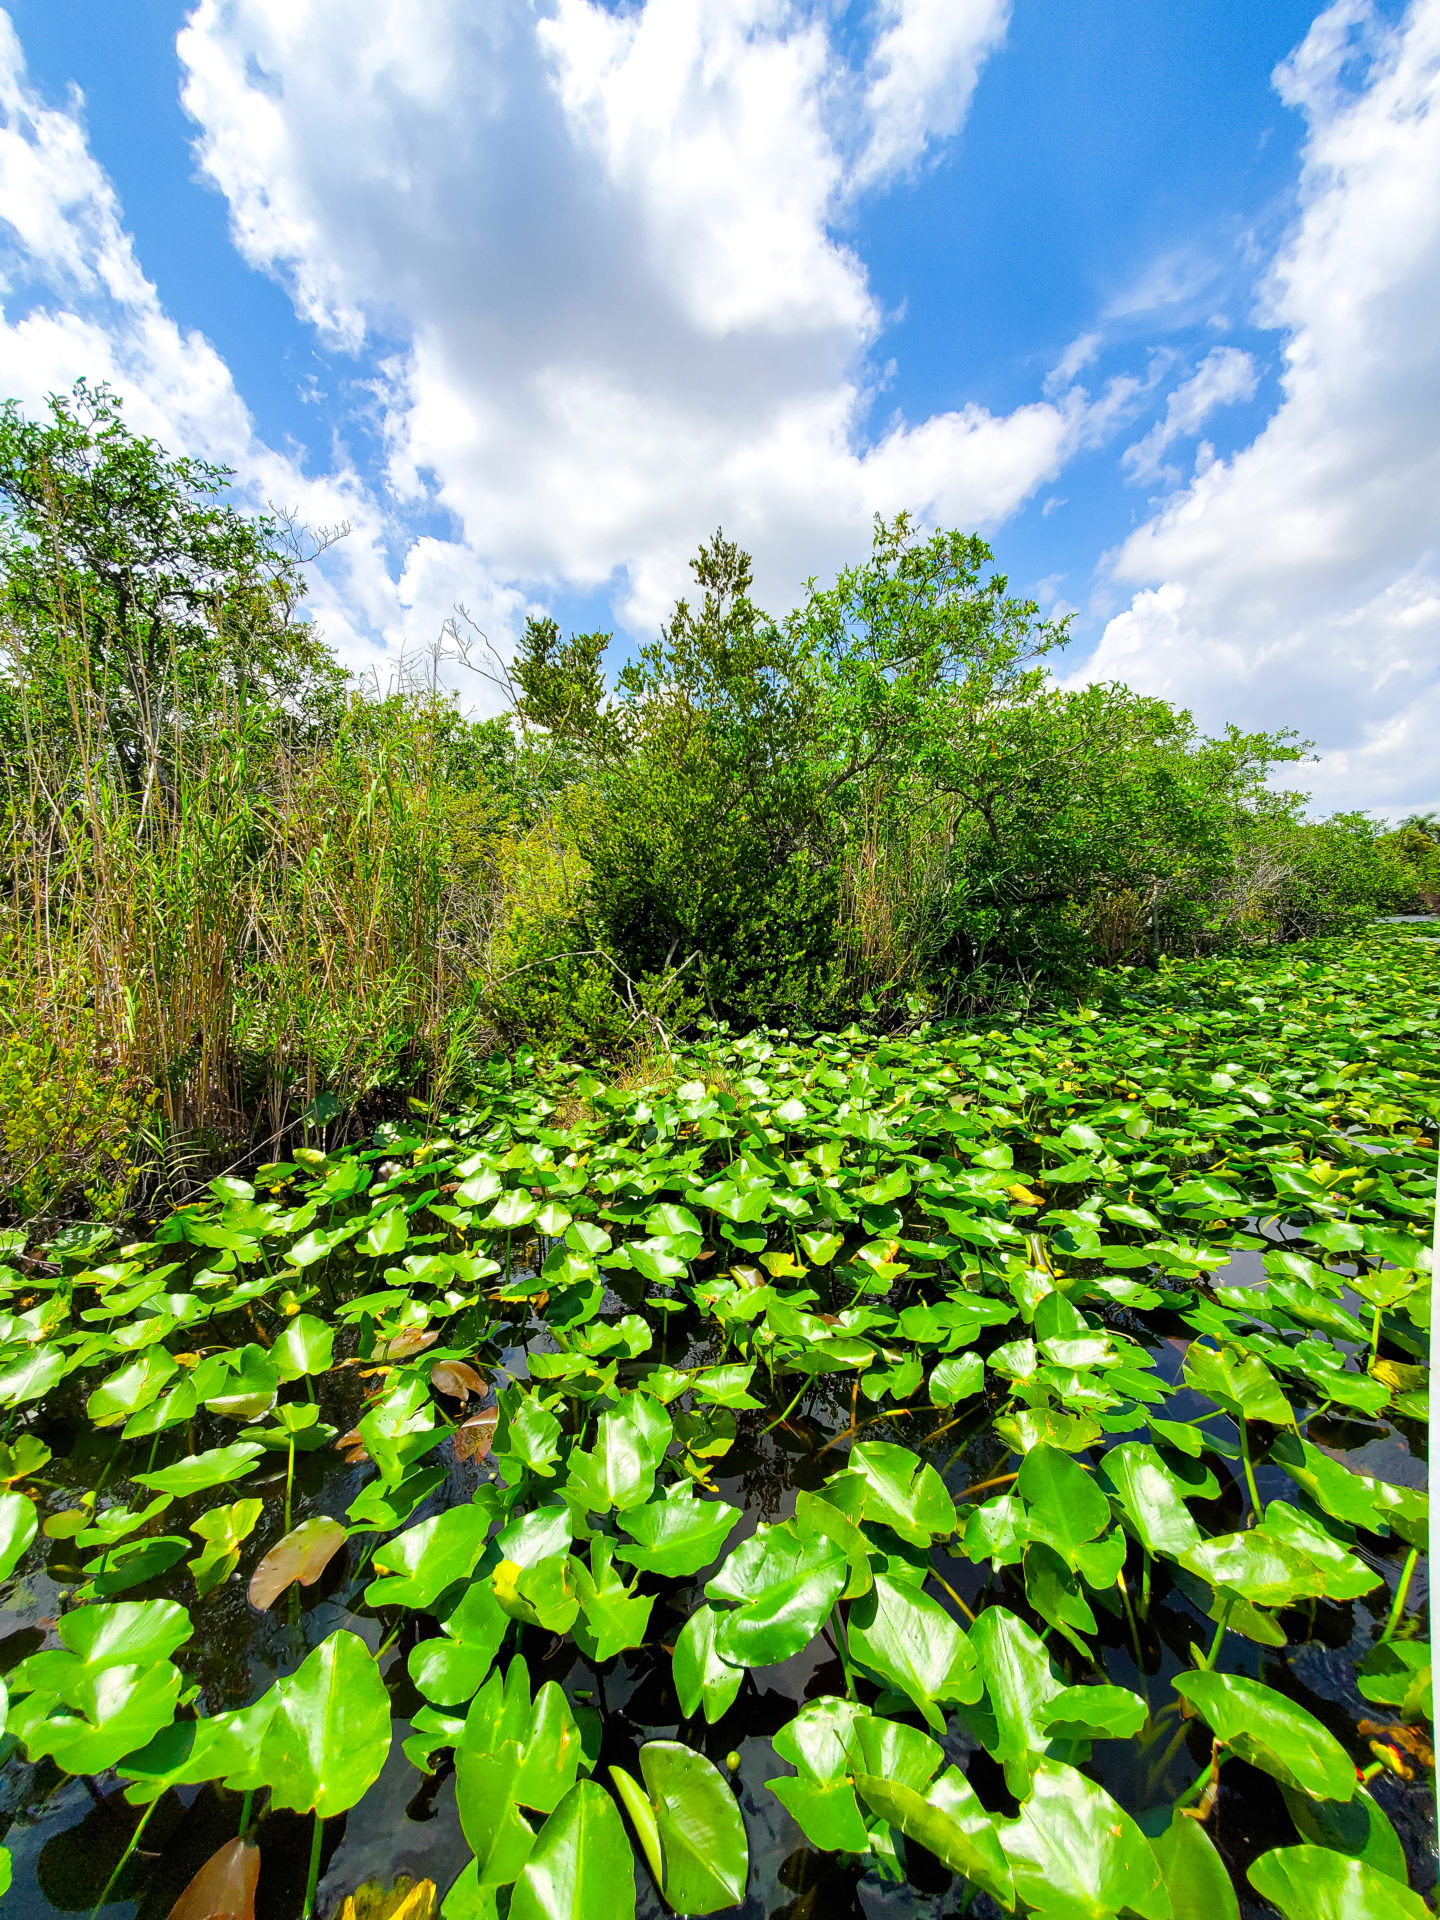 Touring the everglades in a boat